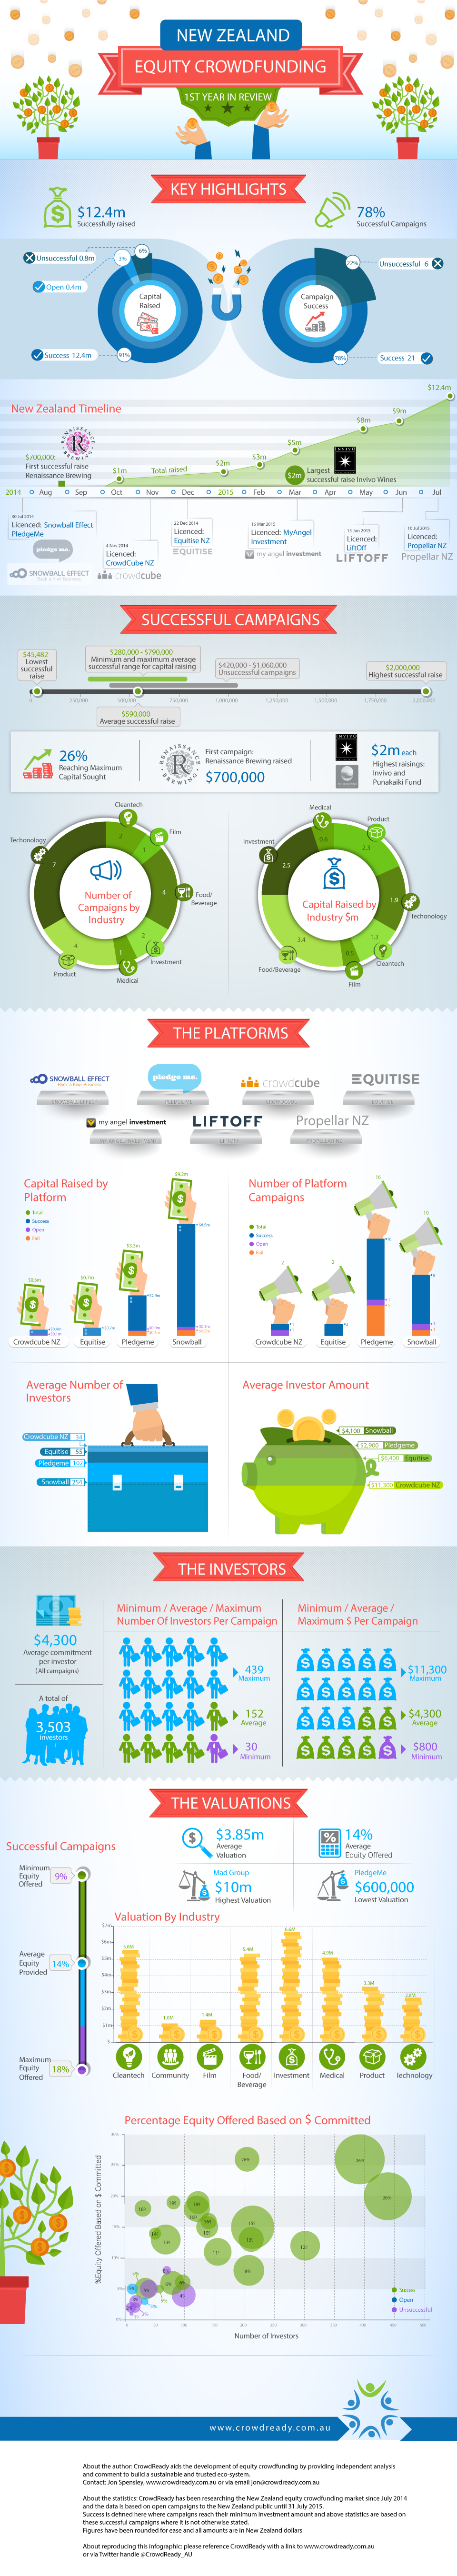 CrowdReady NZ Equity Crowdfunding Statistics Infographic